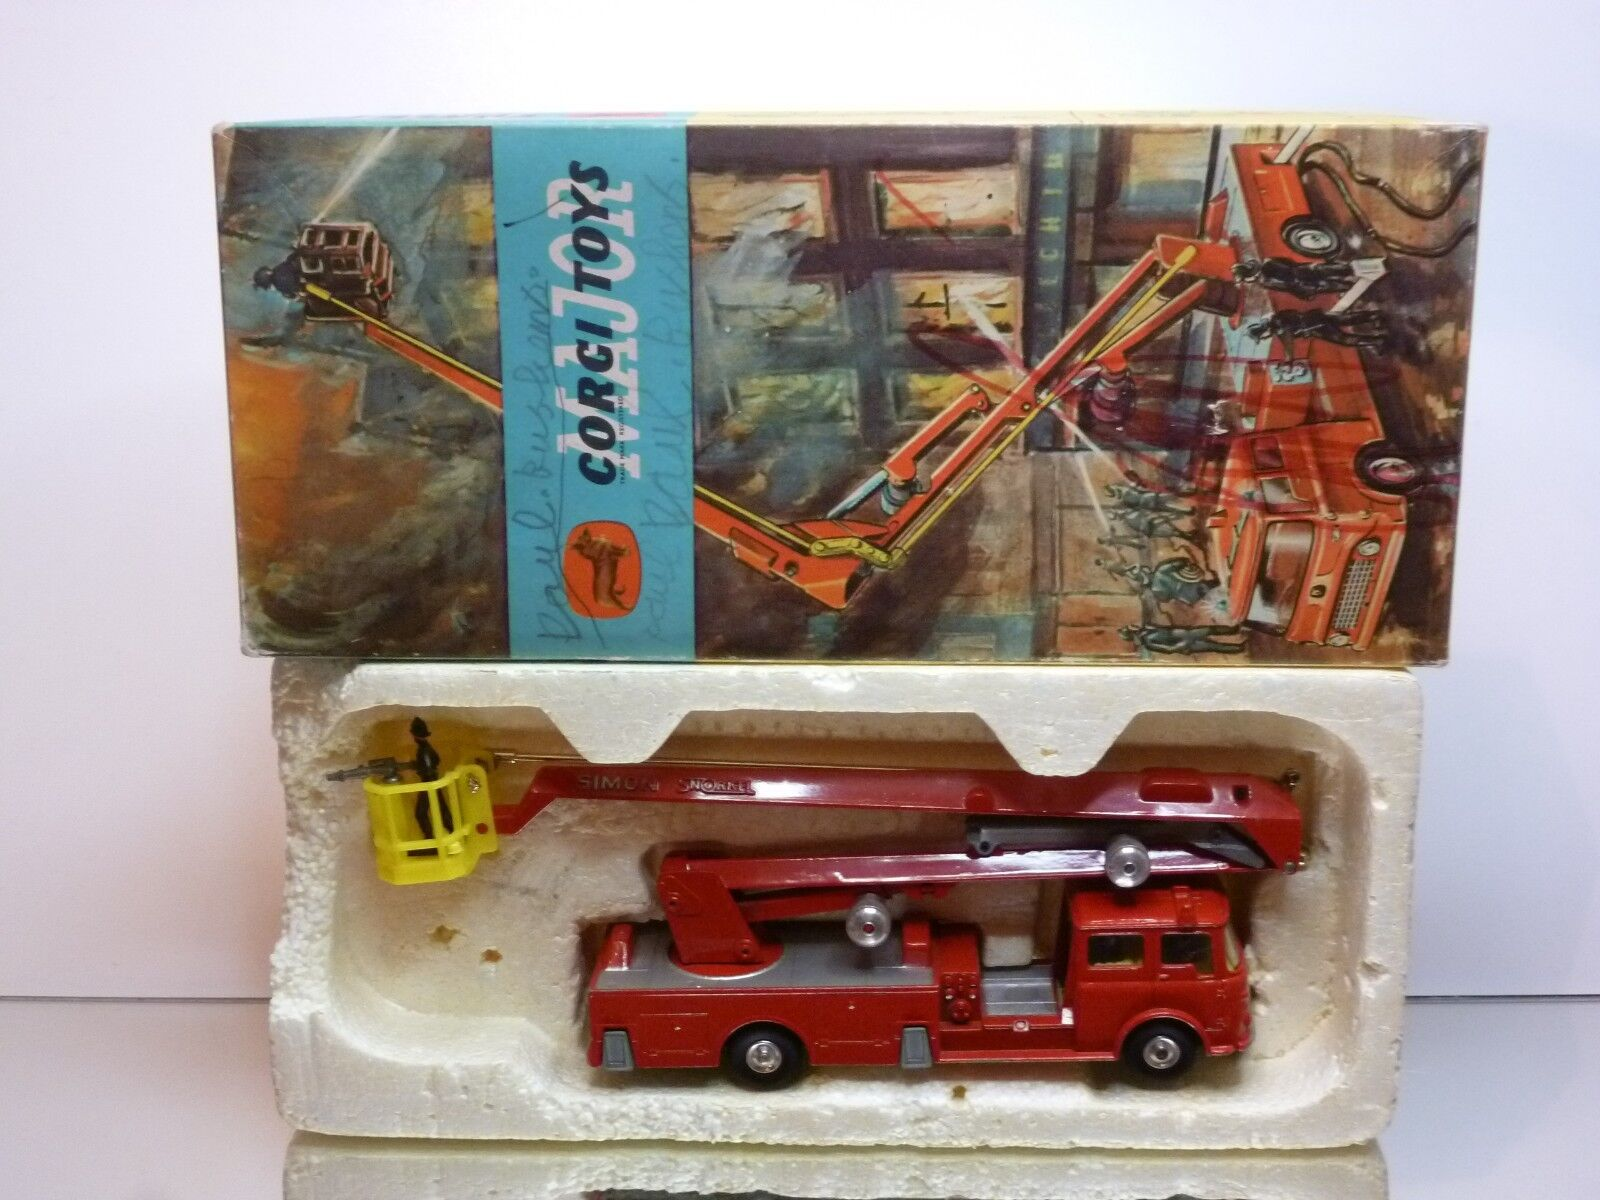 CORGI TOYS 1127 BEDFORD SIMON SNORKEL FIRE ENGINE - VERY GOOD IN BOX